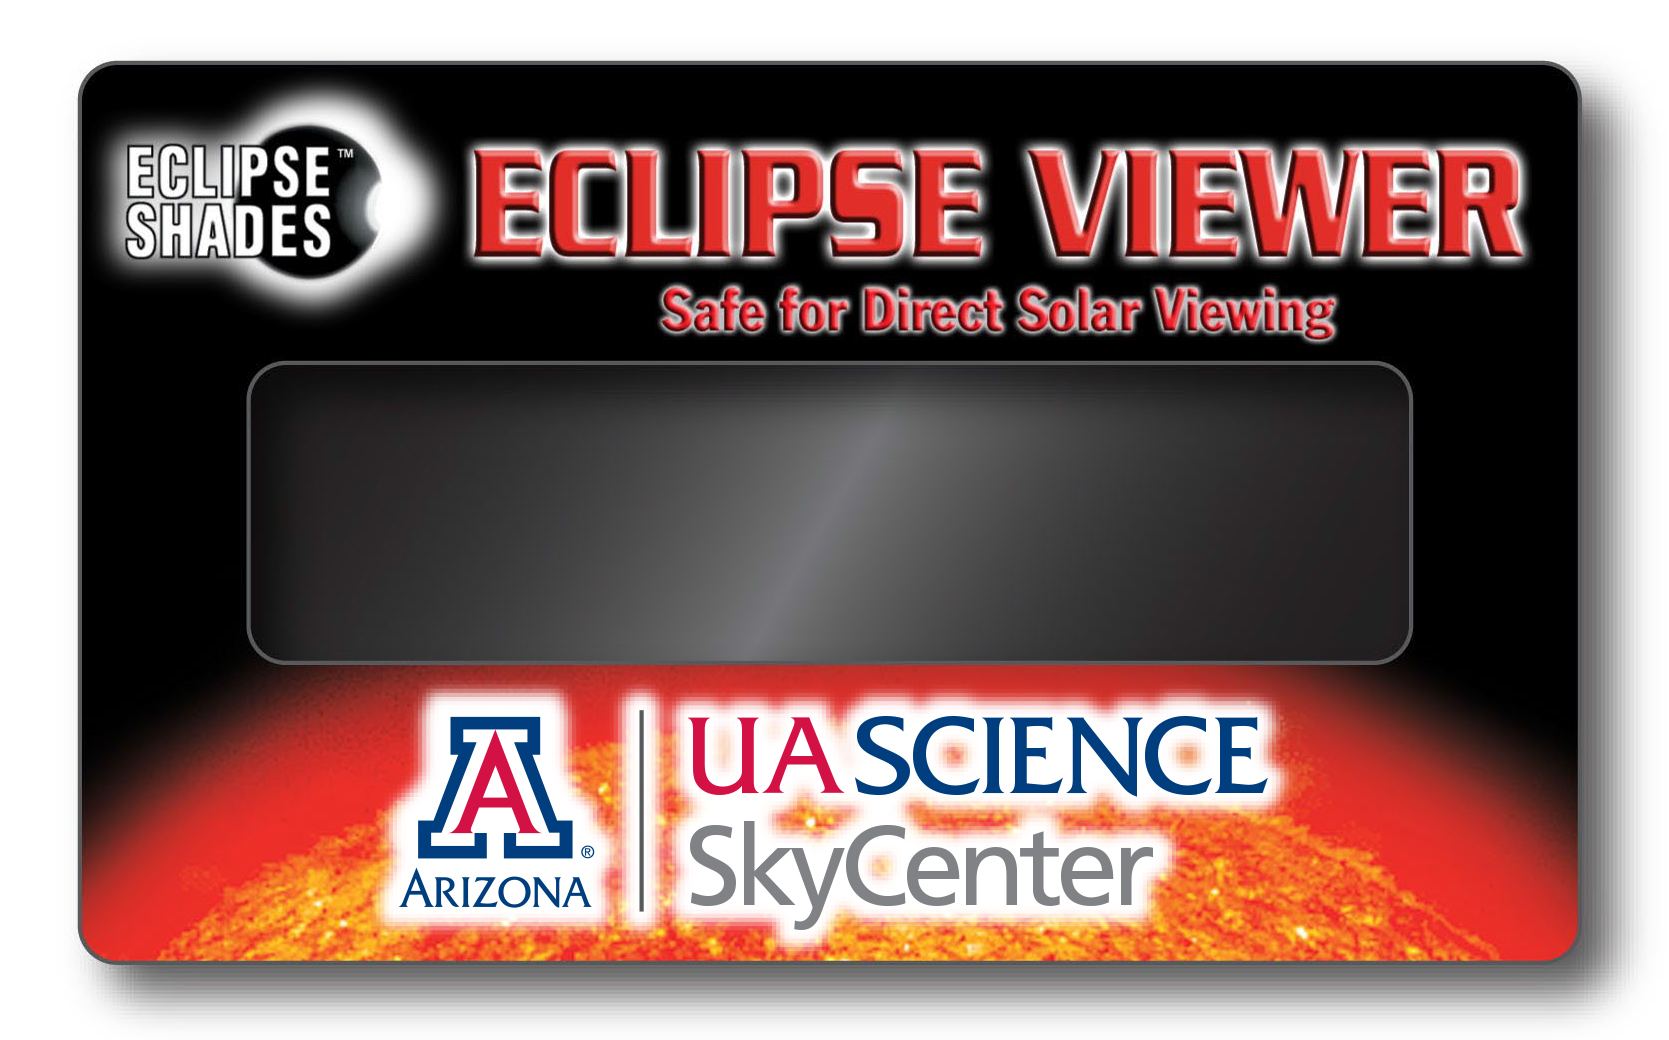 eclipse_viewer_UofA_science_skycenter.jpg